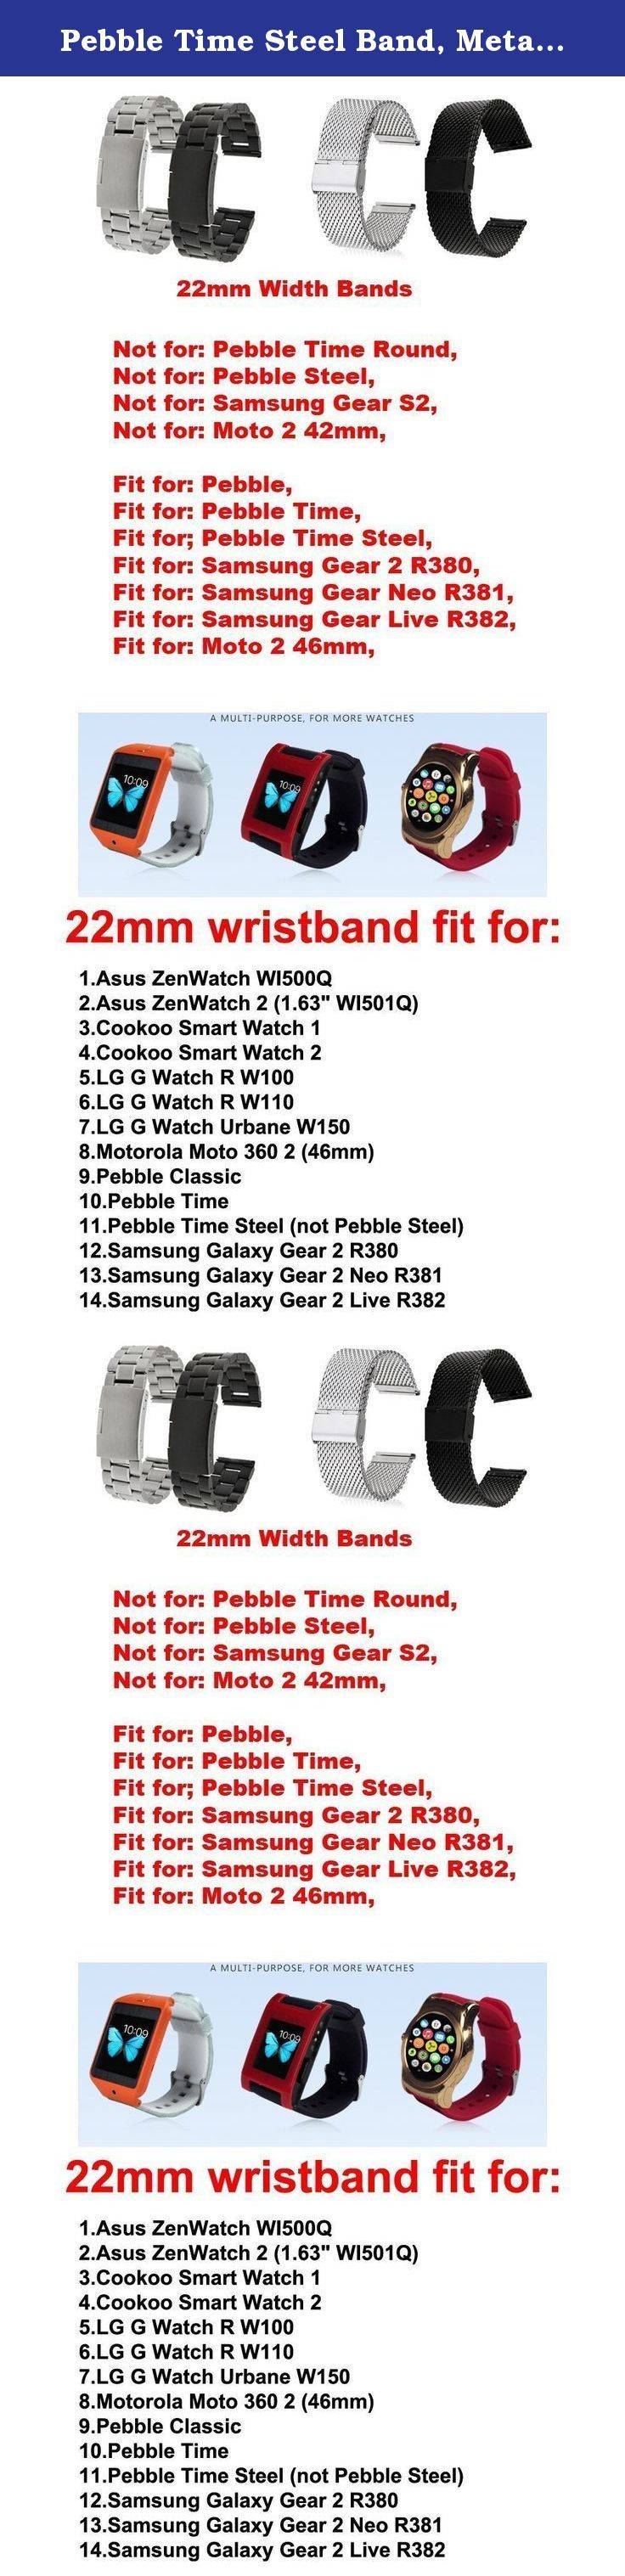 Pebble Time Steel Band, Metal, Replacement Stainless Steel Watch Strap for Pebble Time Steel (NOT Pebble Steel) Smart Watch /No Watch - 3zhuBlack. Metal Watchband/ Stainless Steel Strap fits for (Pebble Time Steel) Smart Watch, Please NOTE: Not Pebble Steel With Prefect workmanship, fashion design, comfortable feeling, stylish look, giving you noble wearing experience, easy to use, come with a set of tools Easy to install and remove; Width: 22mm; Length adjustable length; Best metal links...